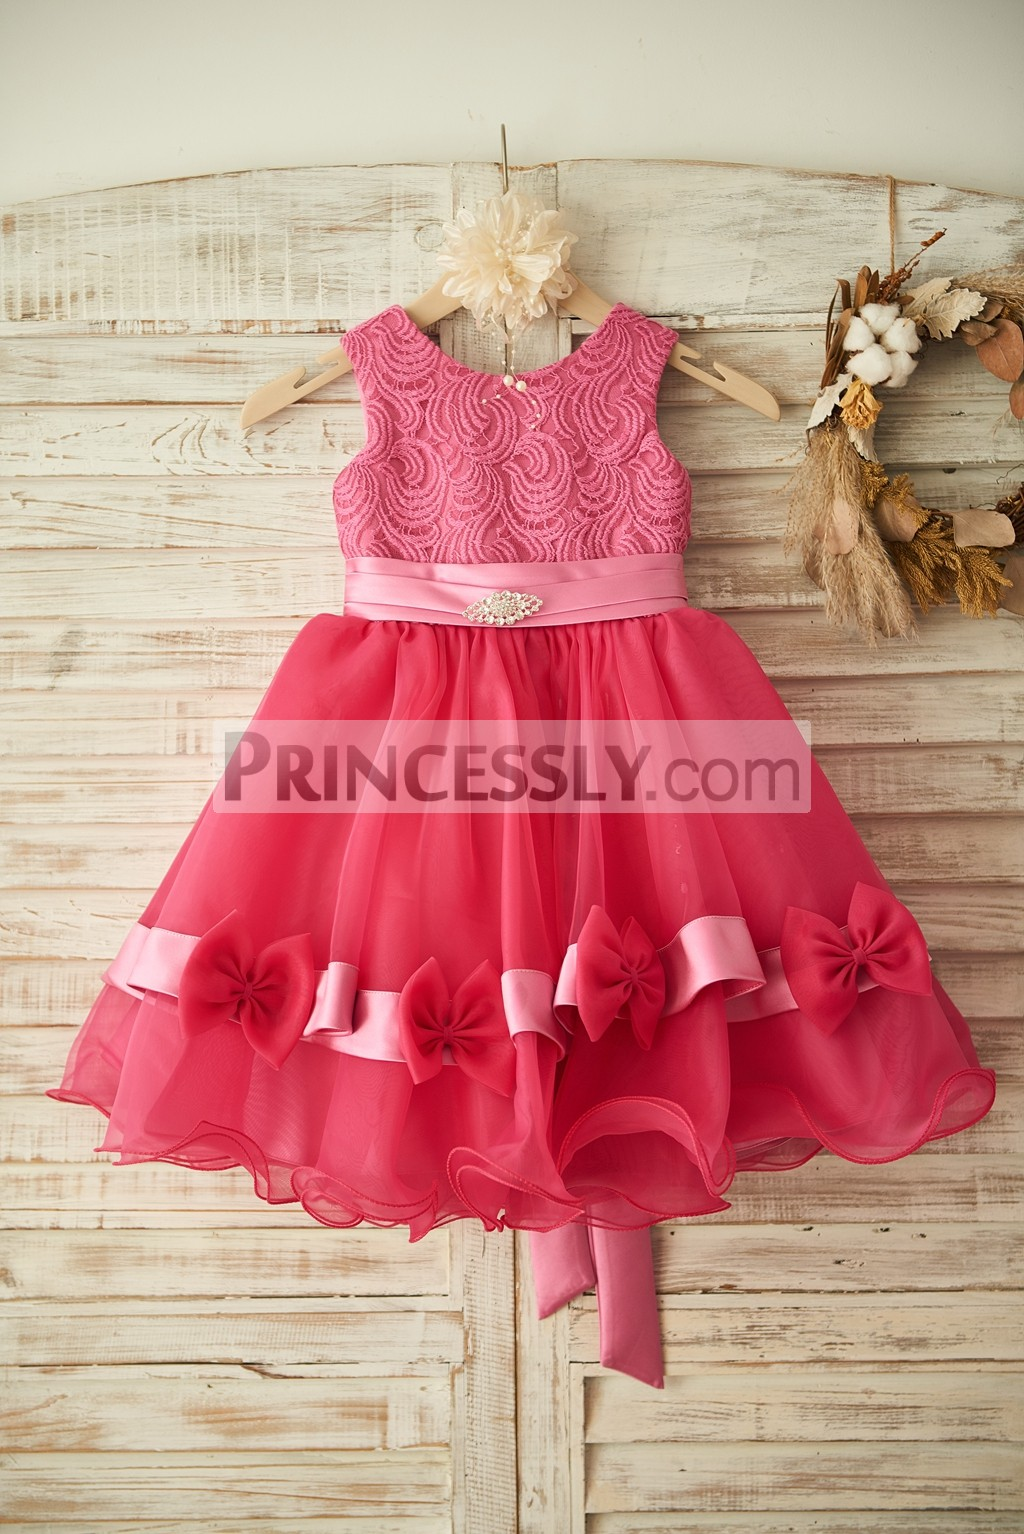 Fuschia Lace Organza Princess Flower Girl Dress with Sash & Bows